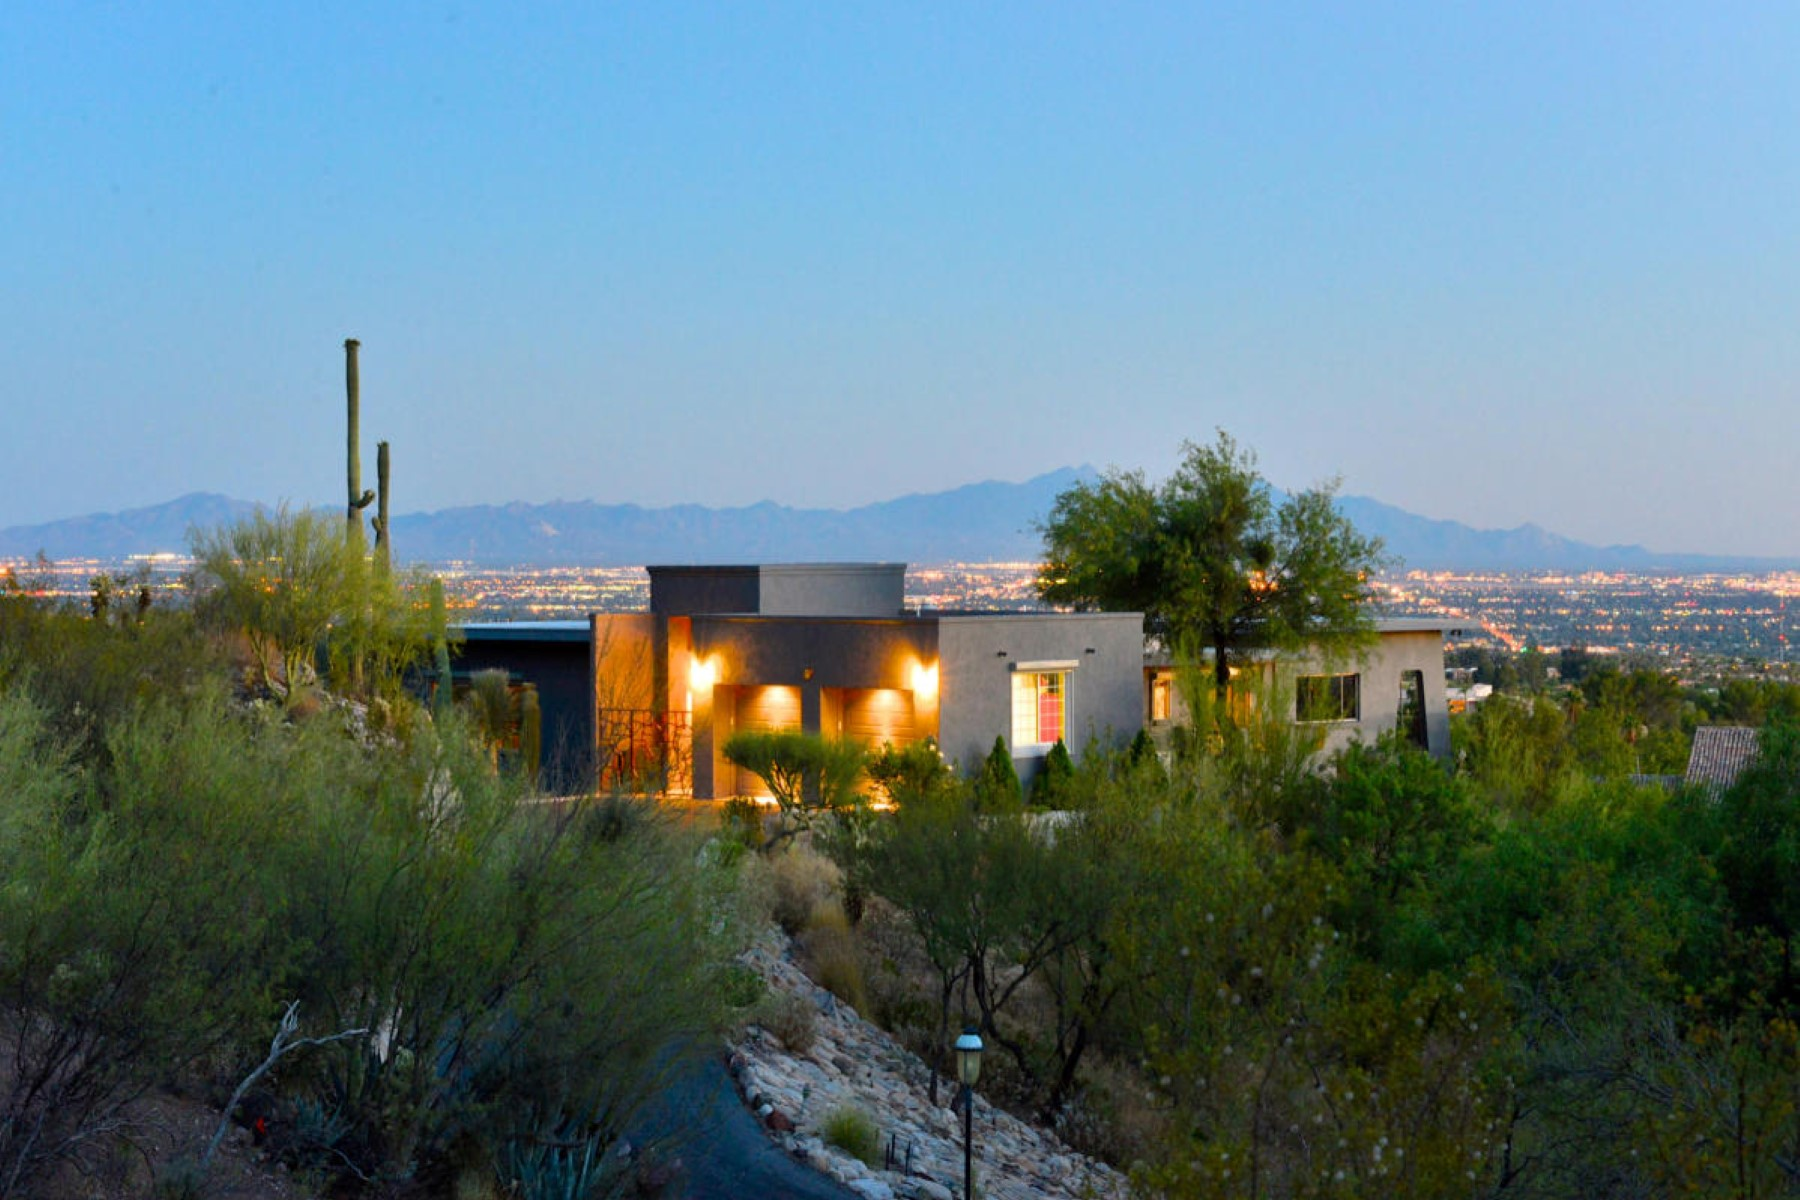 Single Family Home for Sale at Extraordinary modern contemporary home with spectacular city views. 4940 E Winged Foot Drive Tucson, Arizona, 85718 United States